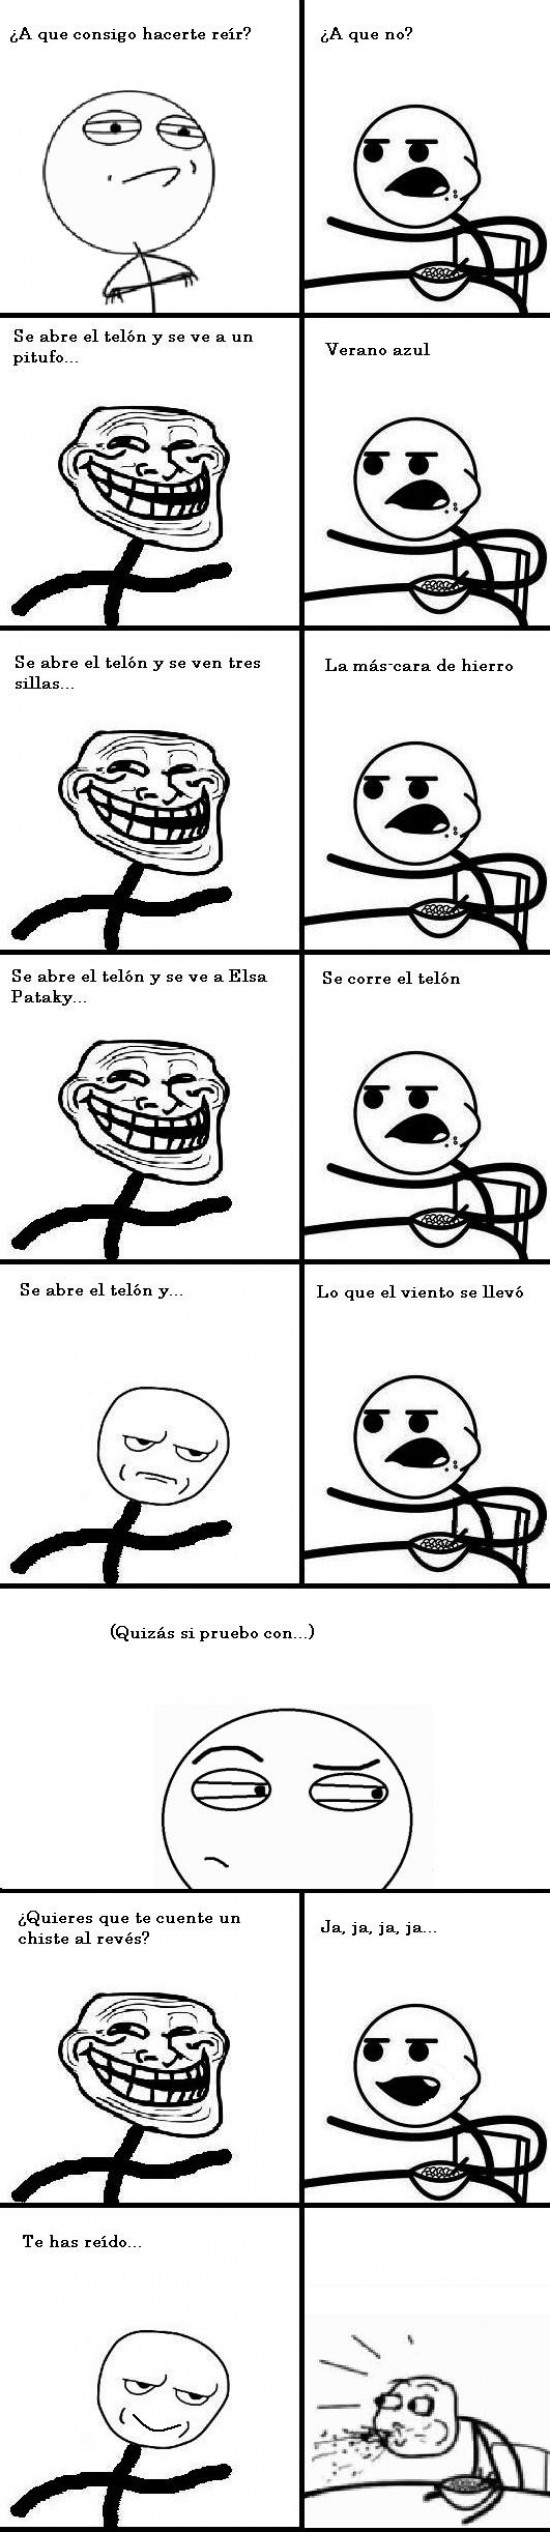 Cereal_guy - Chistes